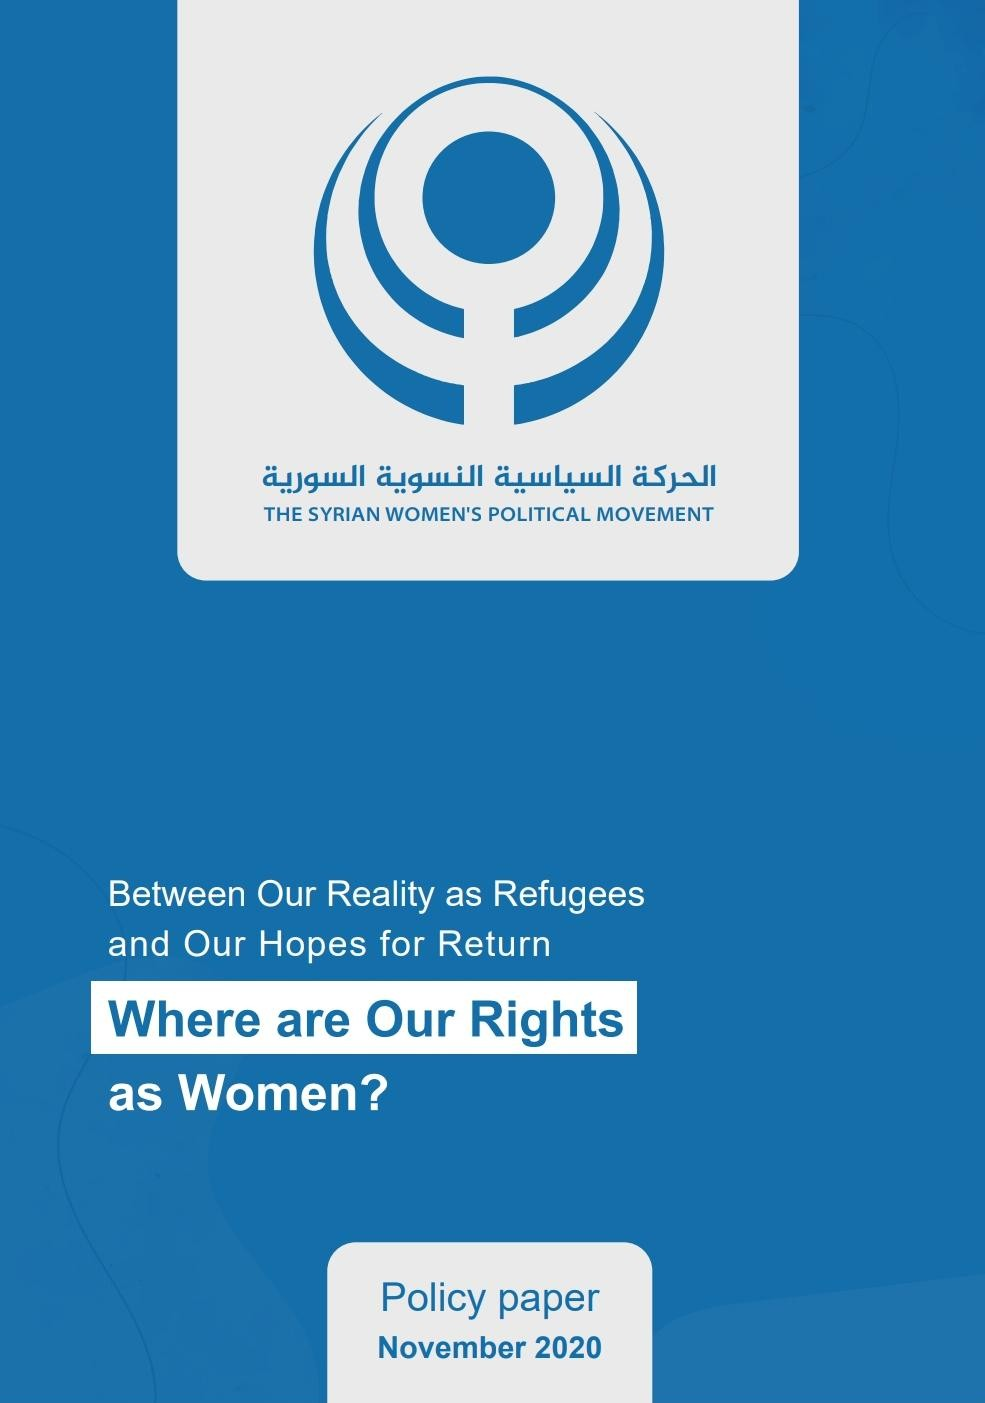 Policy Paper – Between Our Reality As Refugees And Our Hopes For Return: Where Are Our Rights As Women?